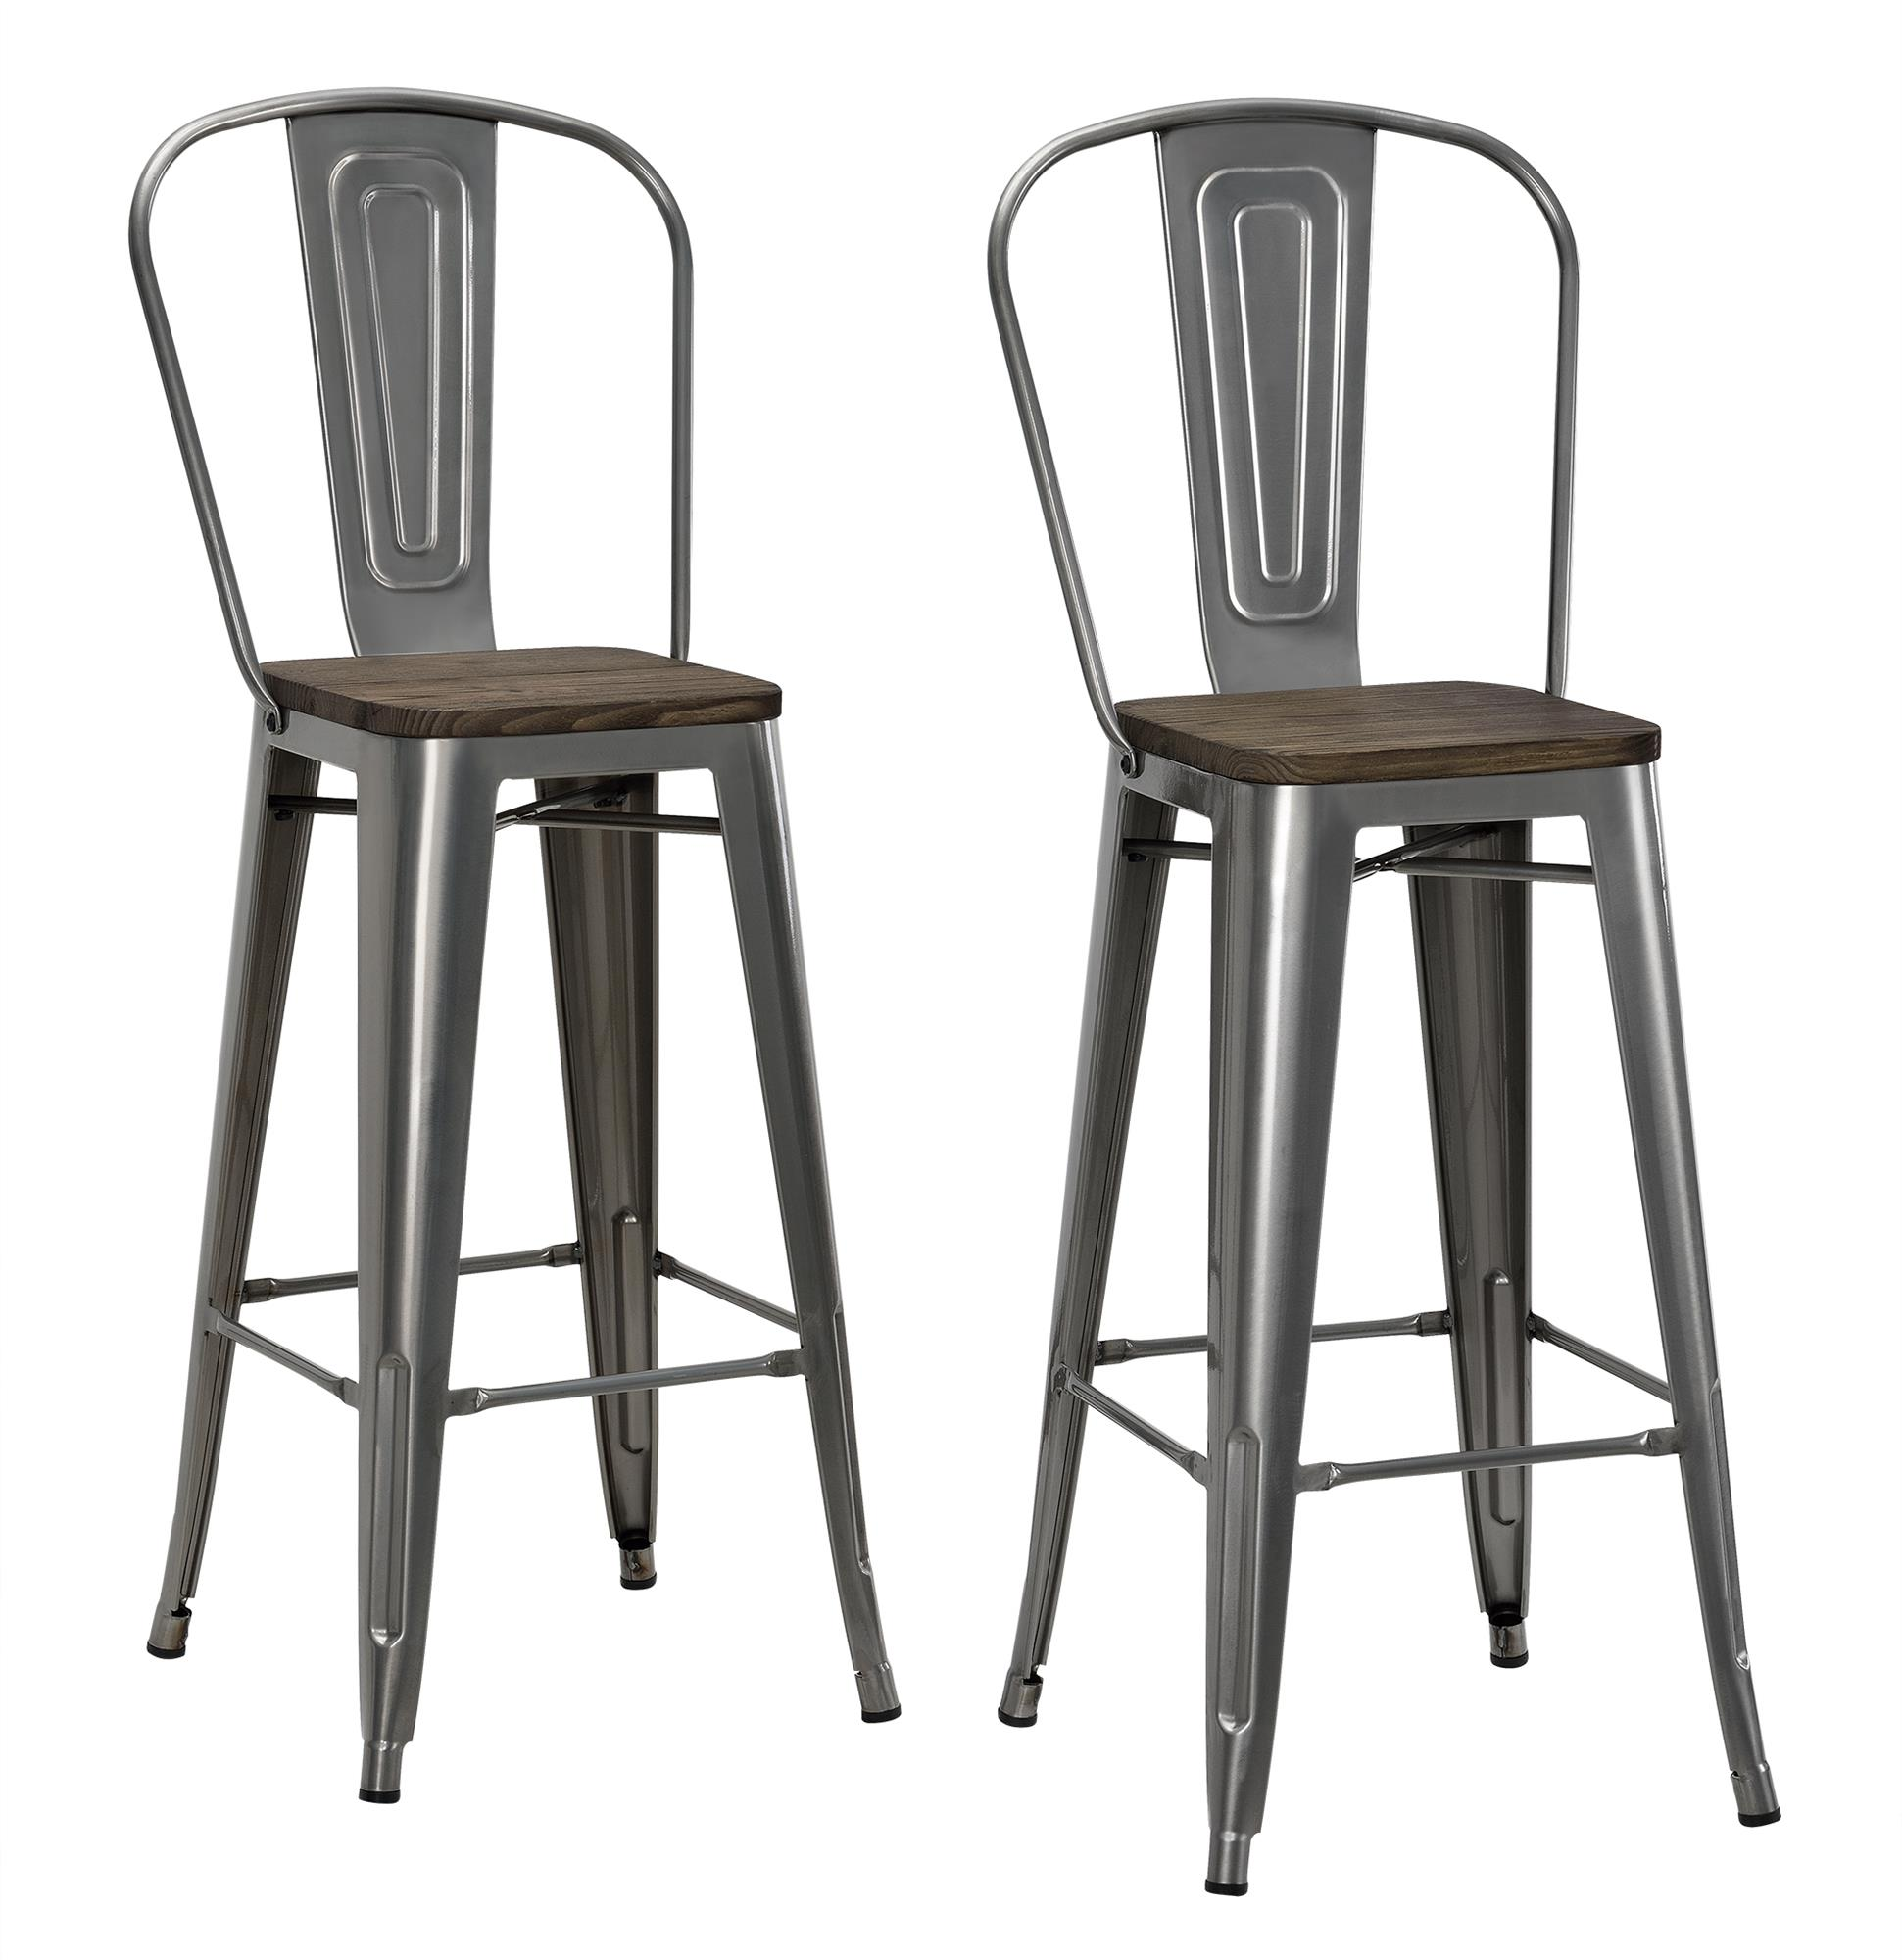 Wood And Metal Bar Stools Dorel Luxor Gun Metal 30 Quot Metal Bar Stool With Wood Seat